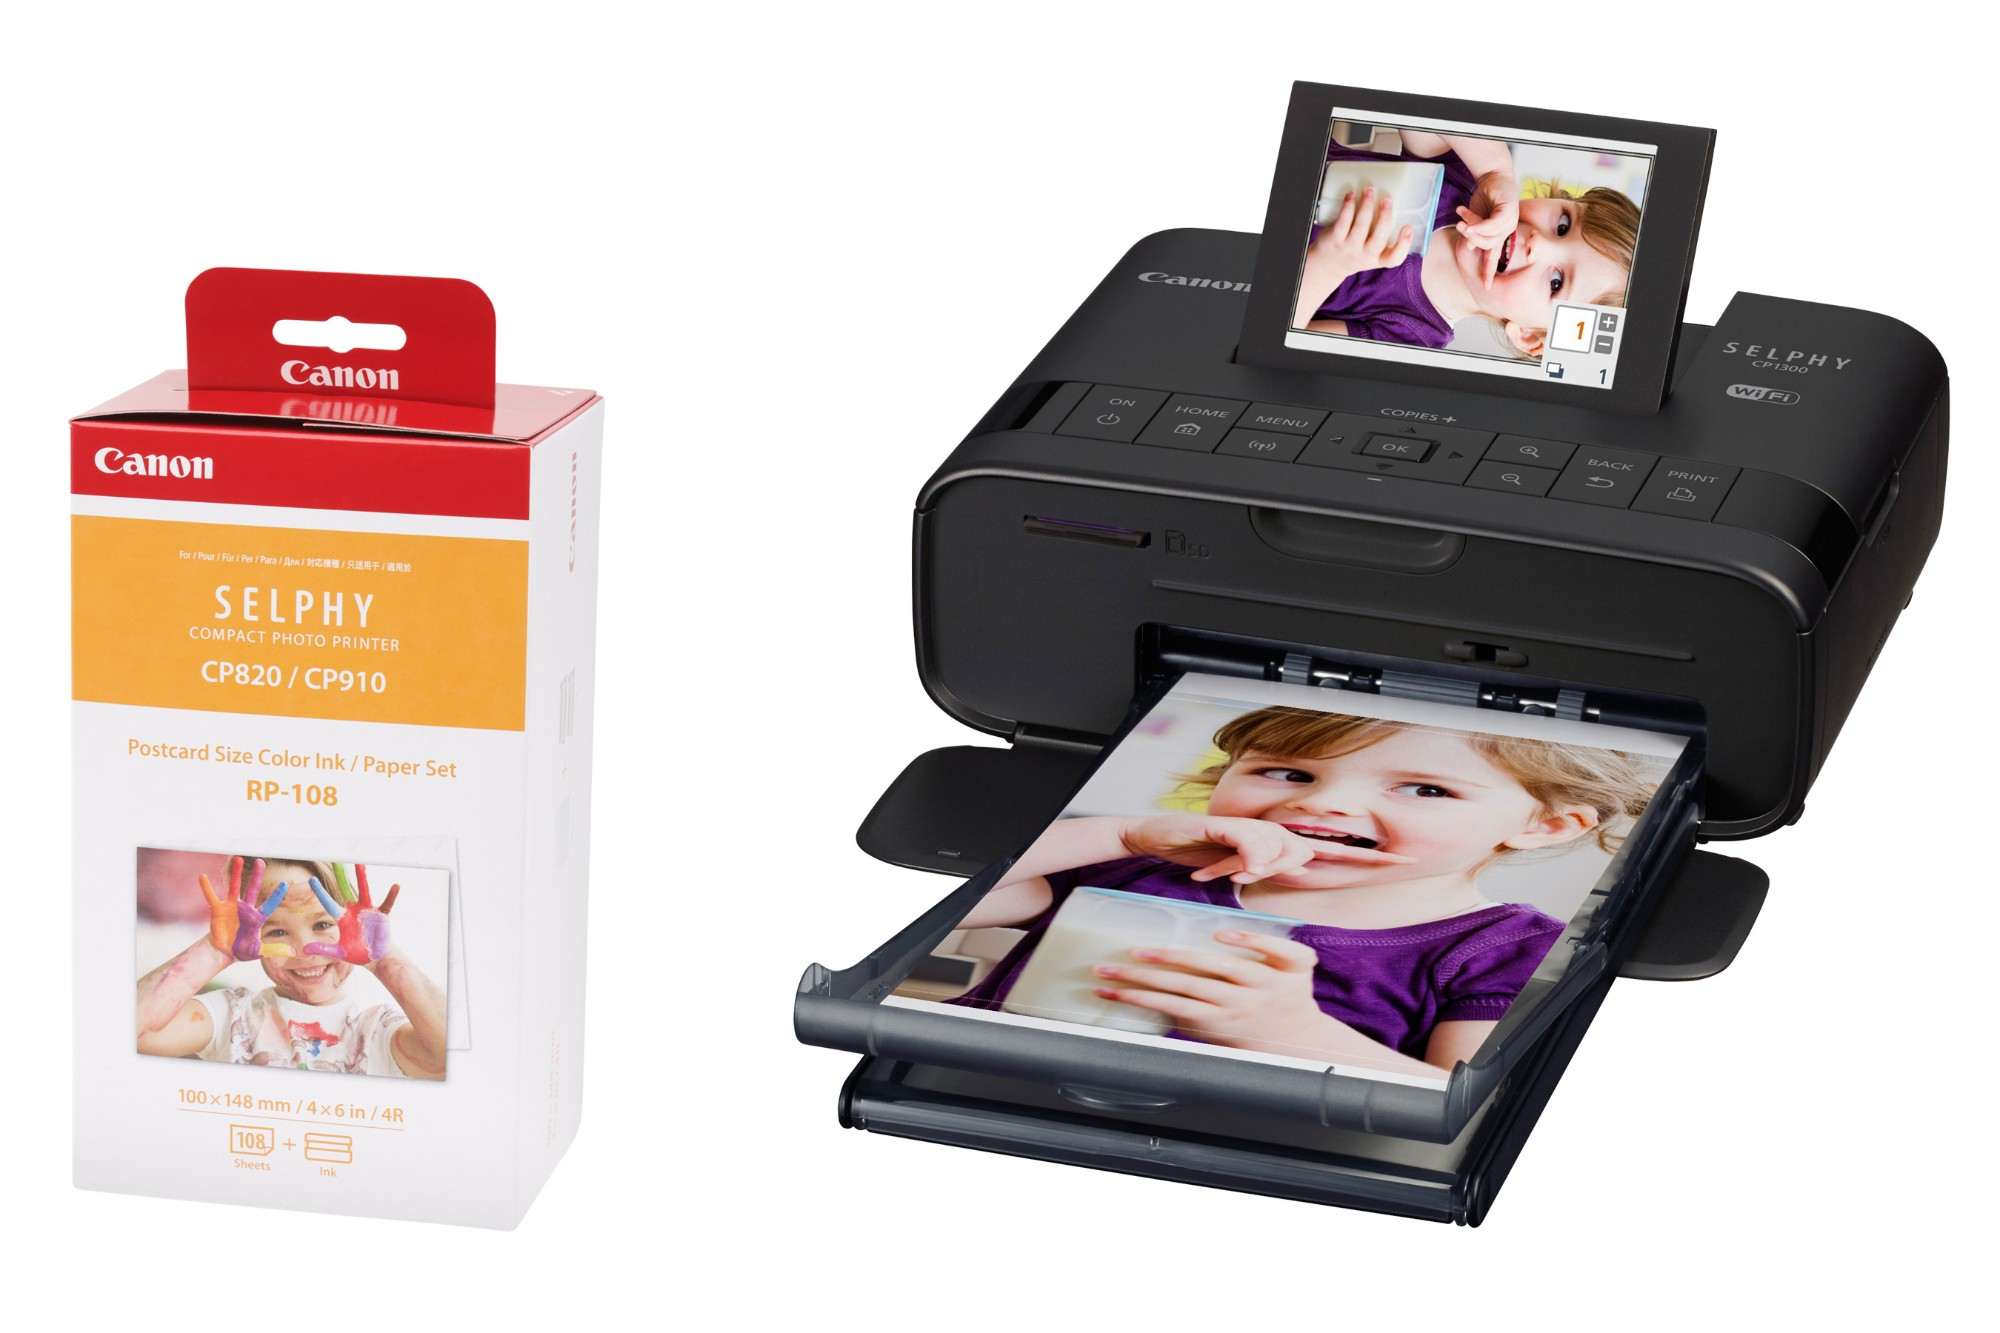 Canon SELPHY CP1300 Black Photo Printer inc RP-108 Ink Paper Set for 108x  Photos